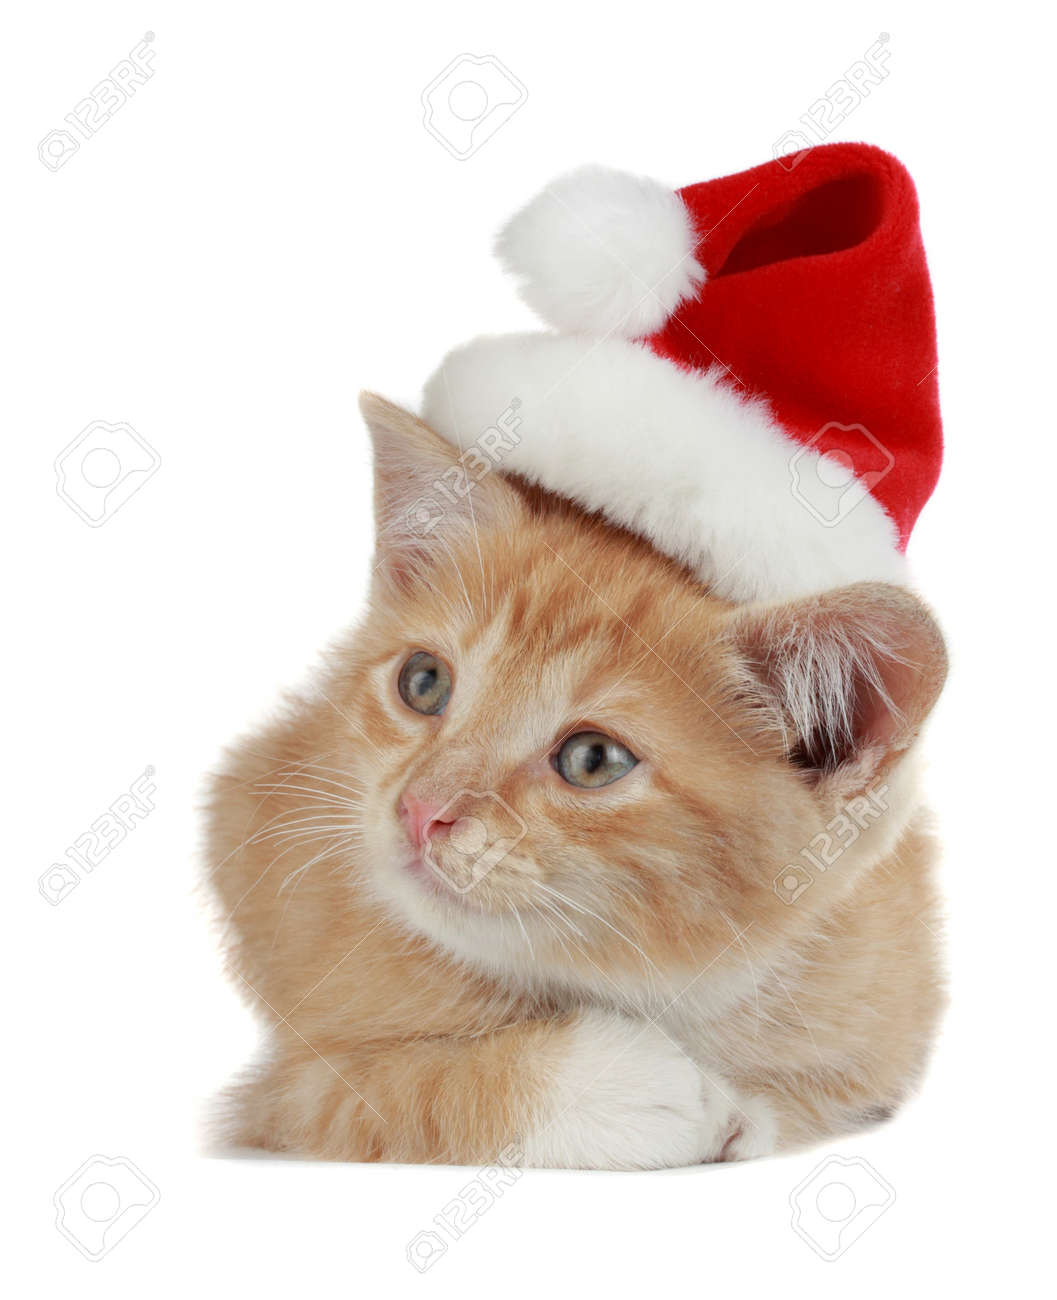 Kittens Wearing Christmas Hats Cute Kitten Wearing Christmas